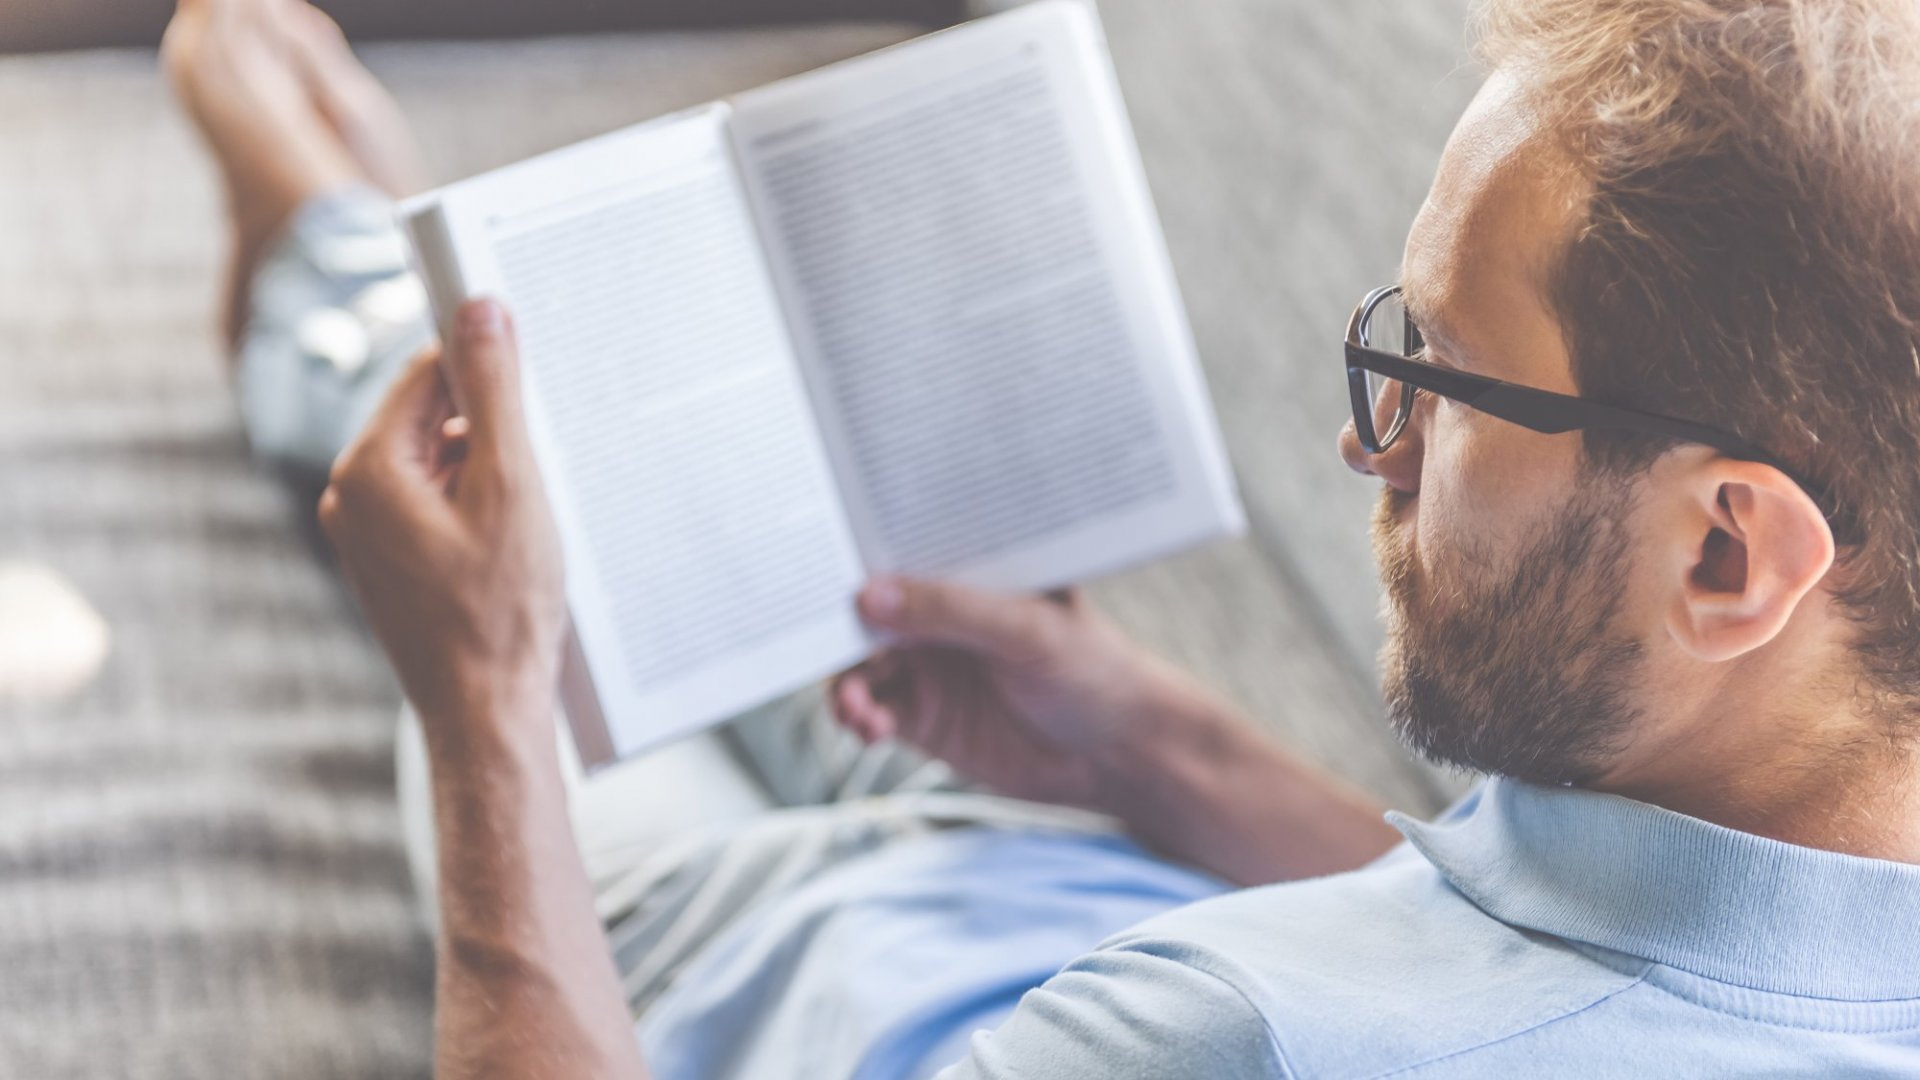 Why You Shouldn't Feel Like a Slacker for Reading at Work